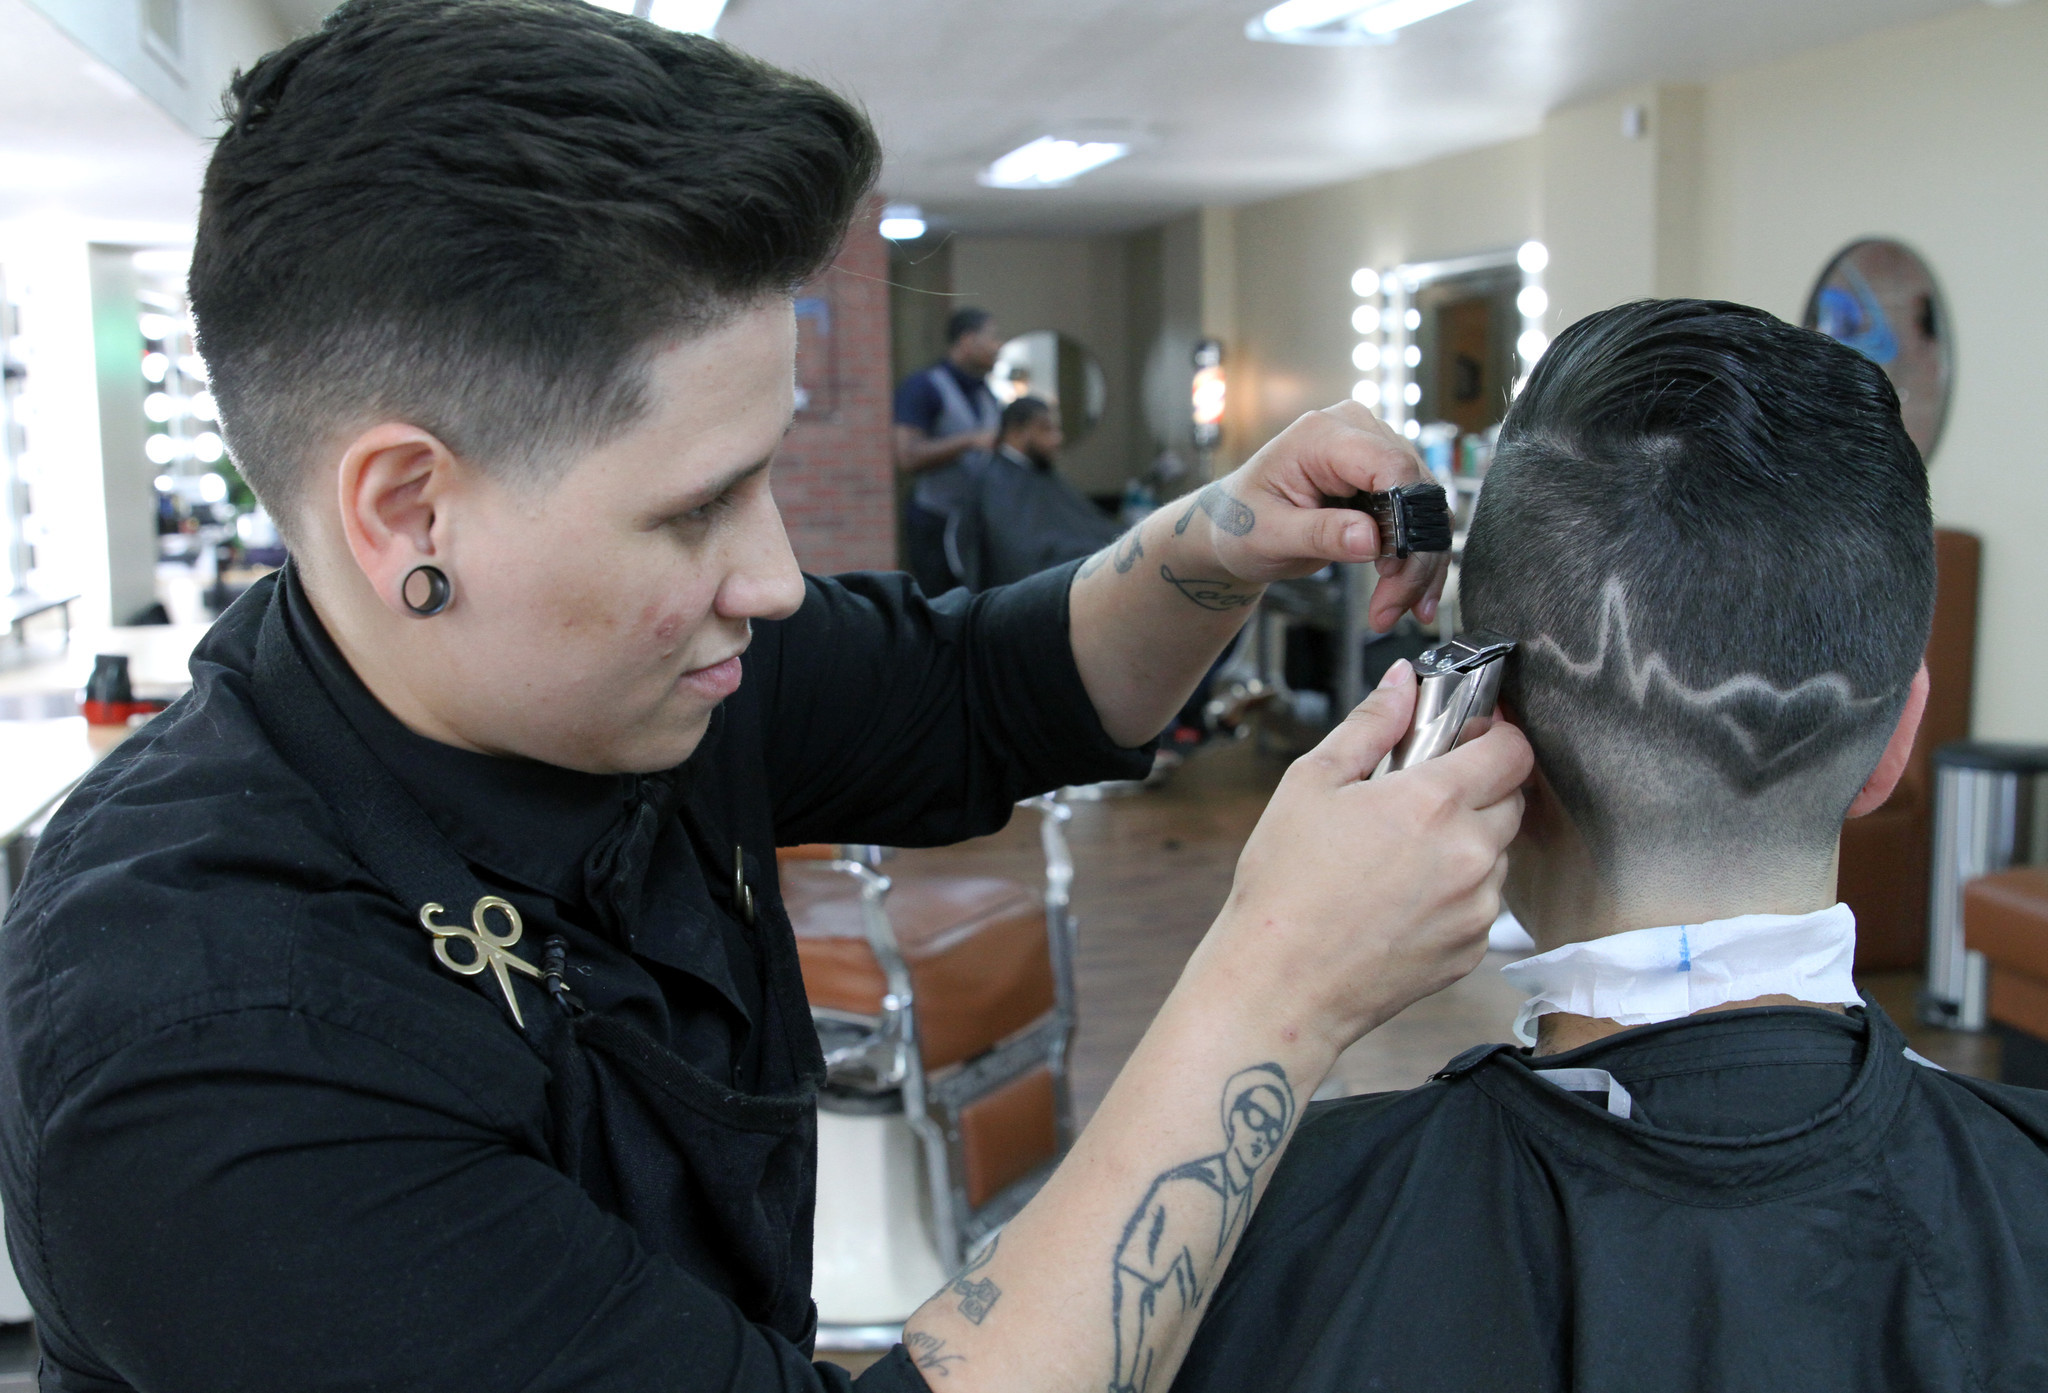 Barbershop honors victims of Pulse tragedy with special